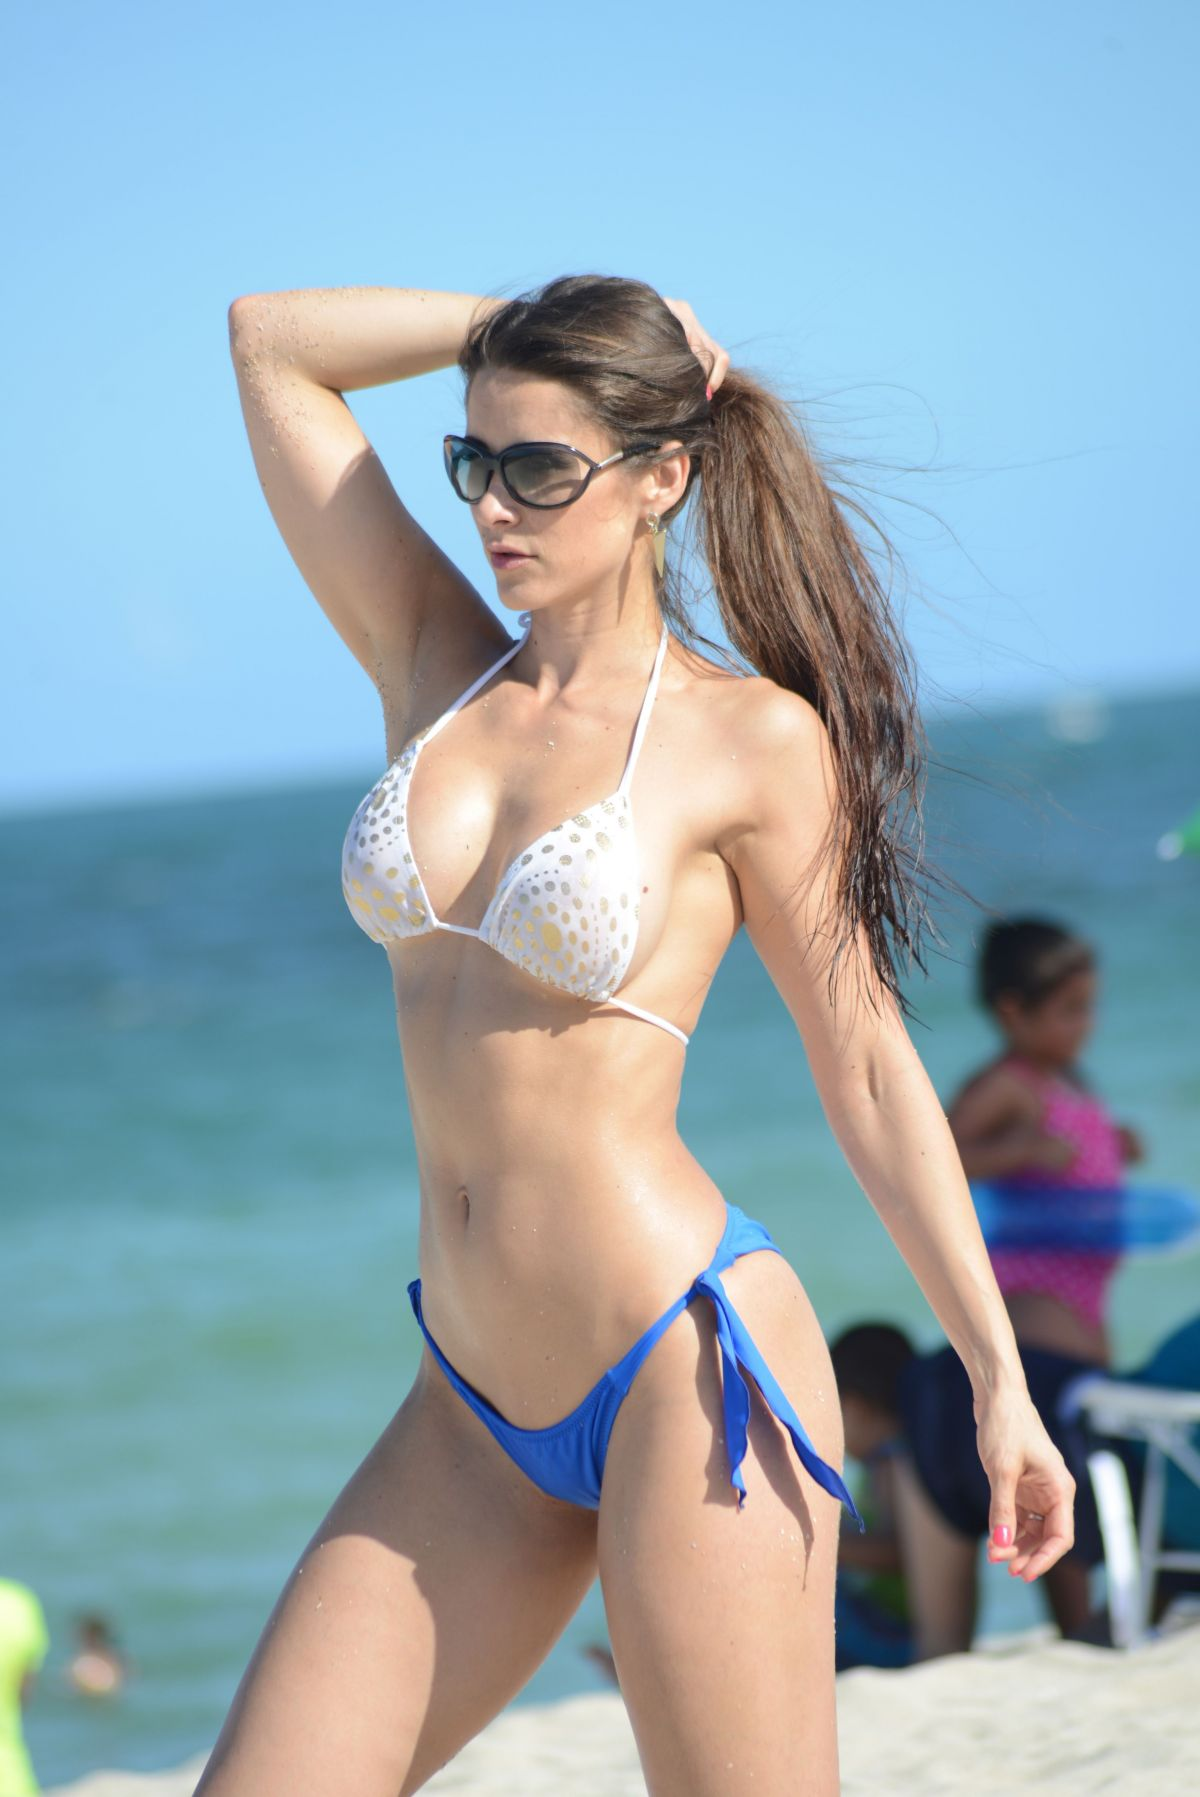 Anais Zanotti anais zanotti in bikini poses on the beach in miami - celebzz